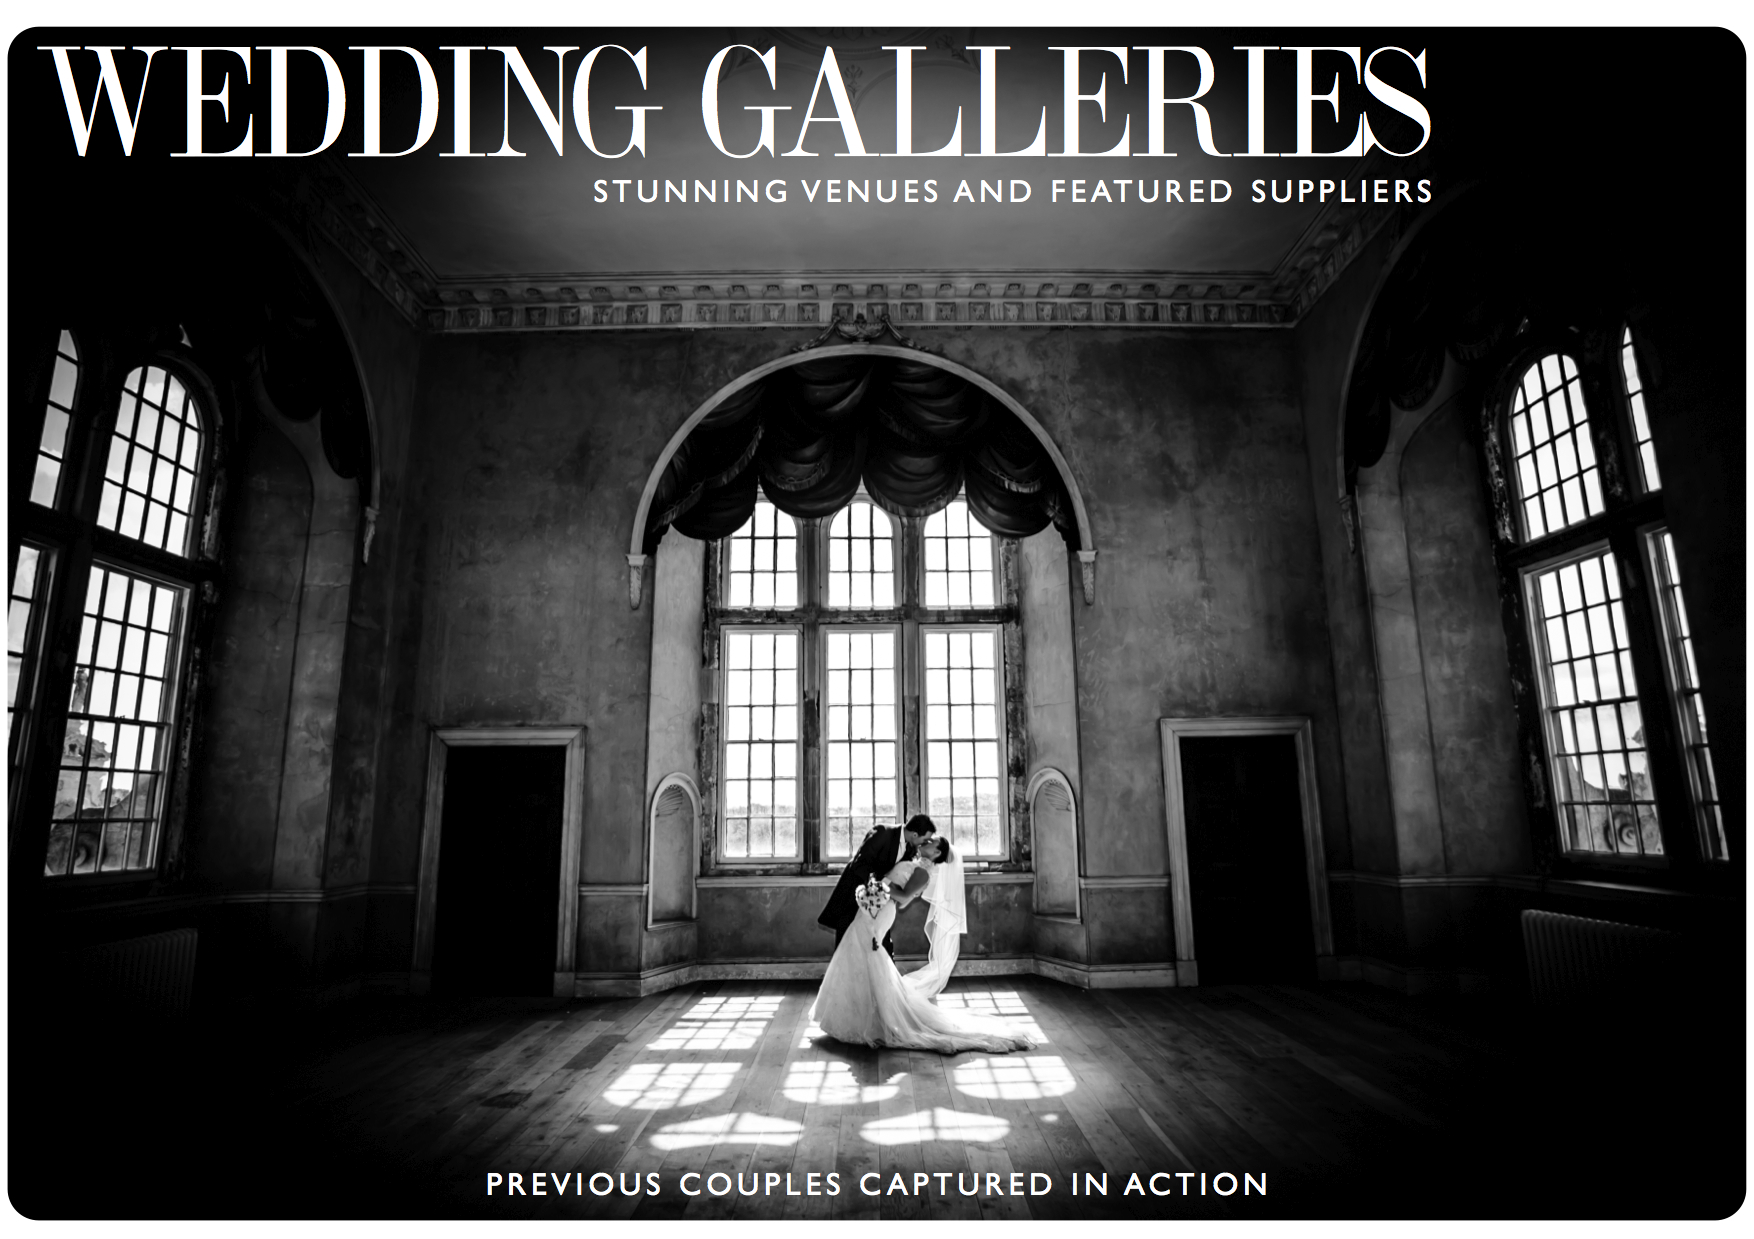 Wedding Gallery Examples - Click the image above to view our featured couples.